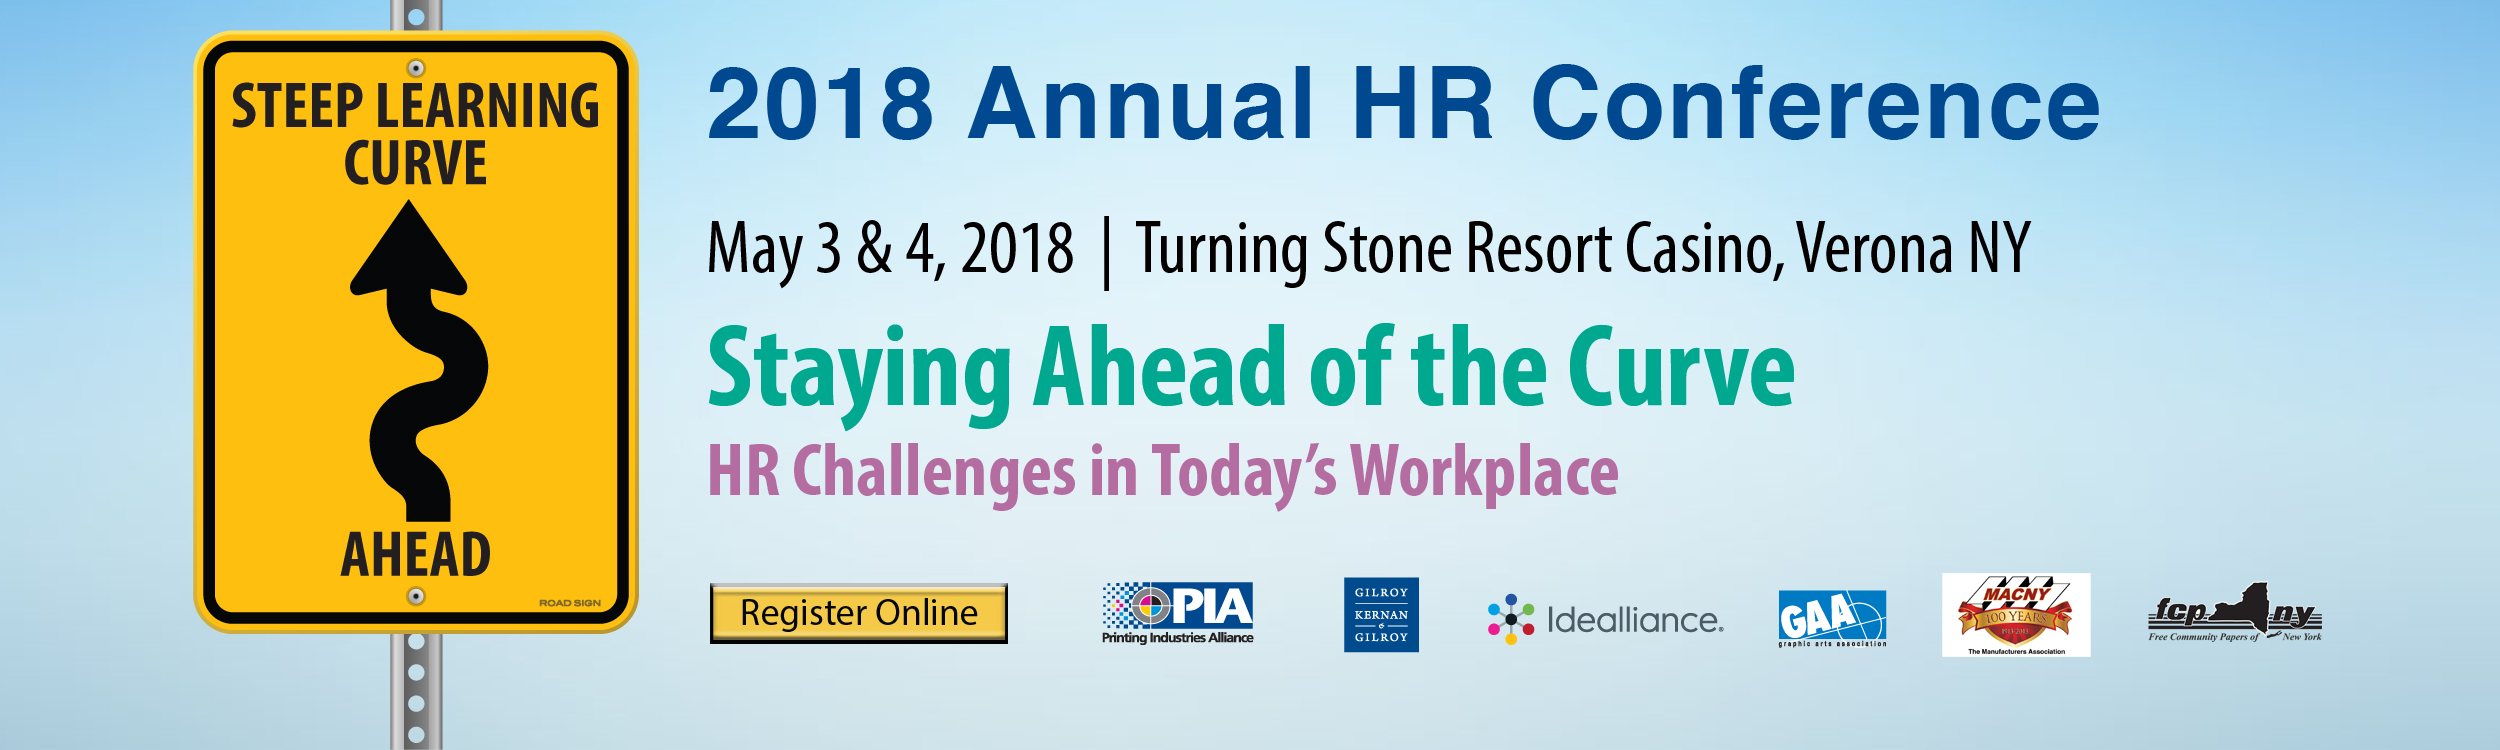 PIA - Human Resources Conference 2018